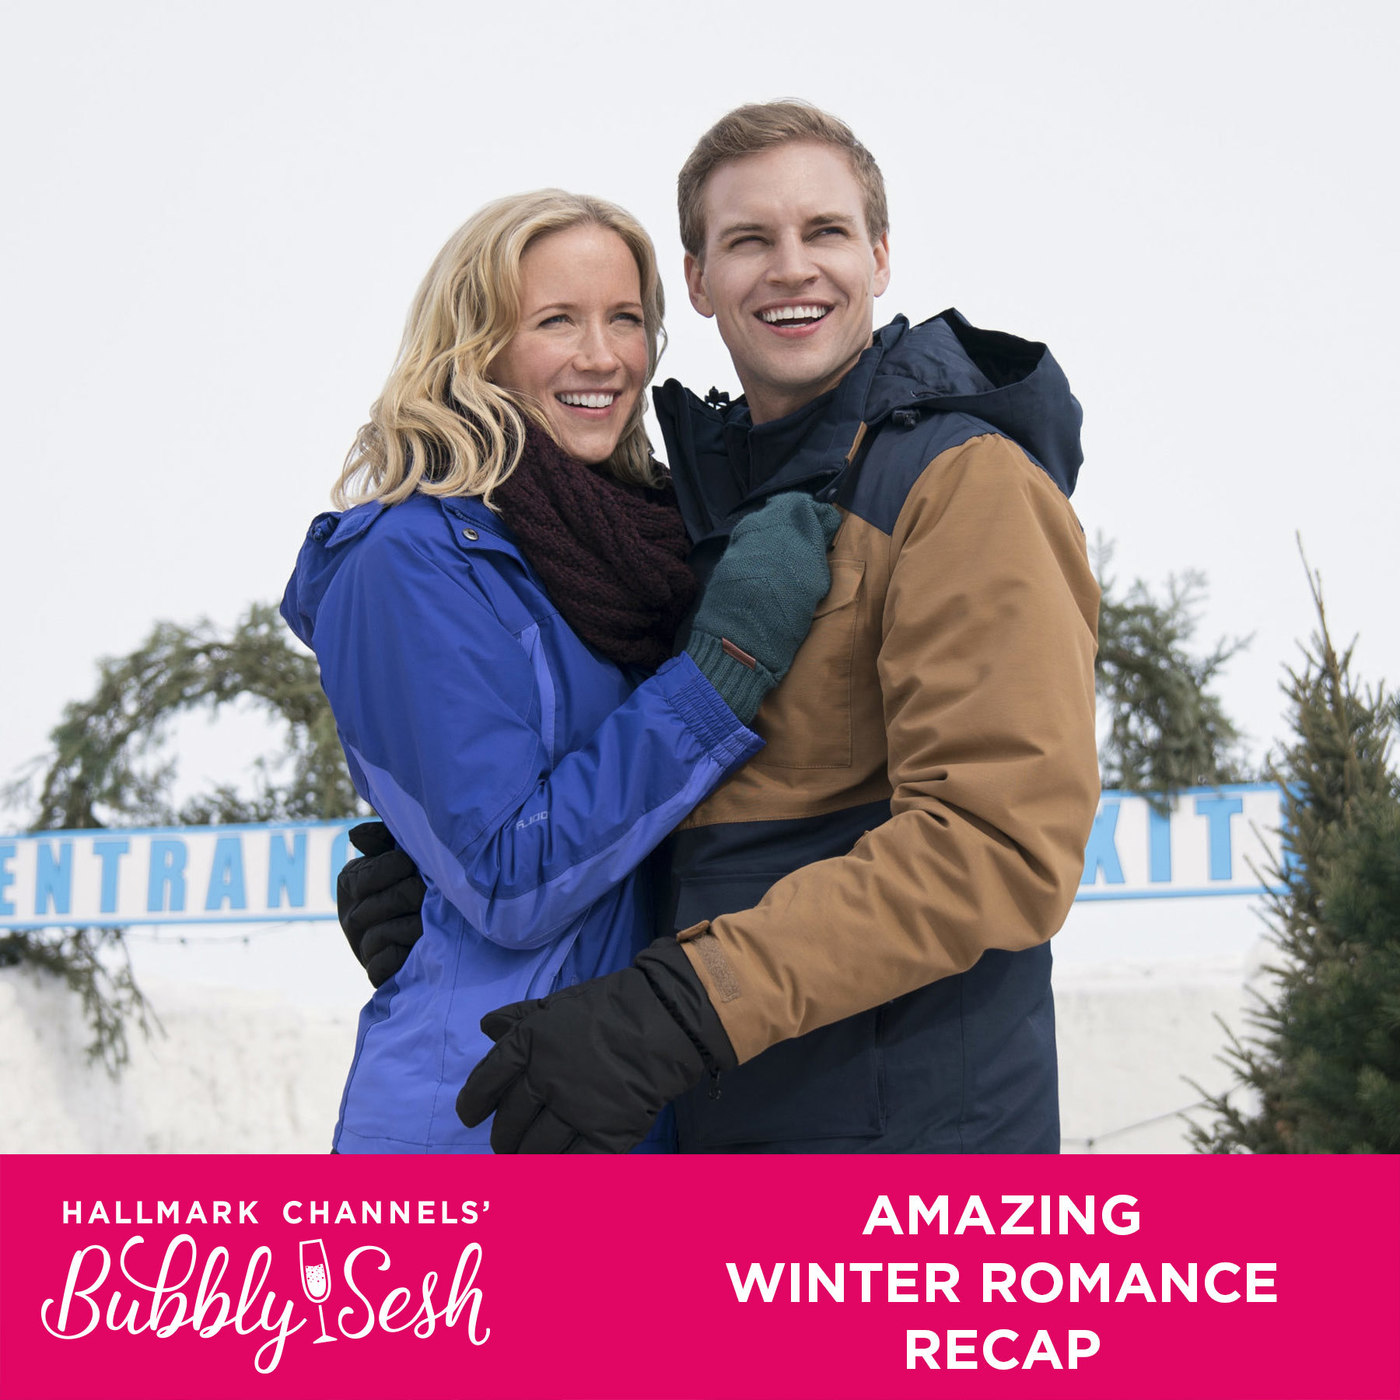 Amazing Winter Romance Recap